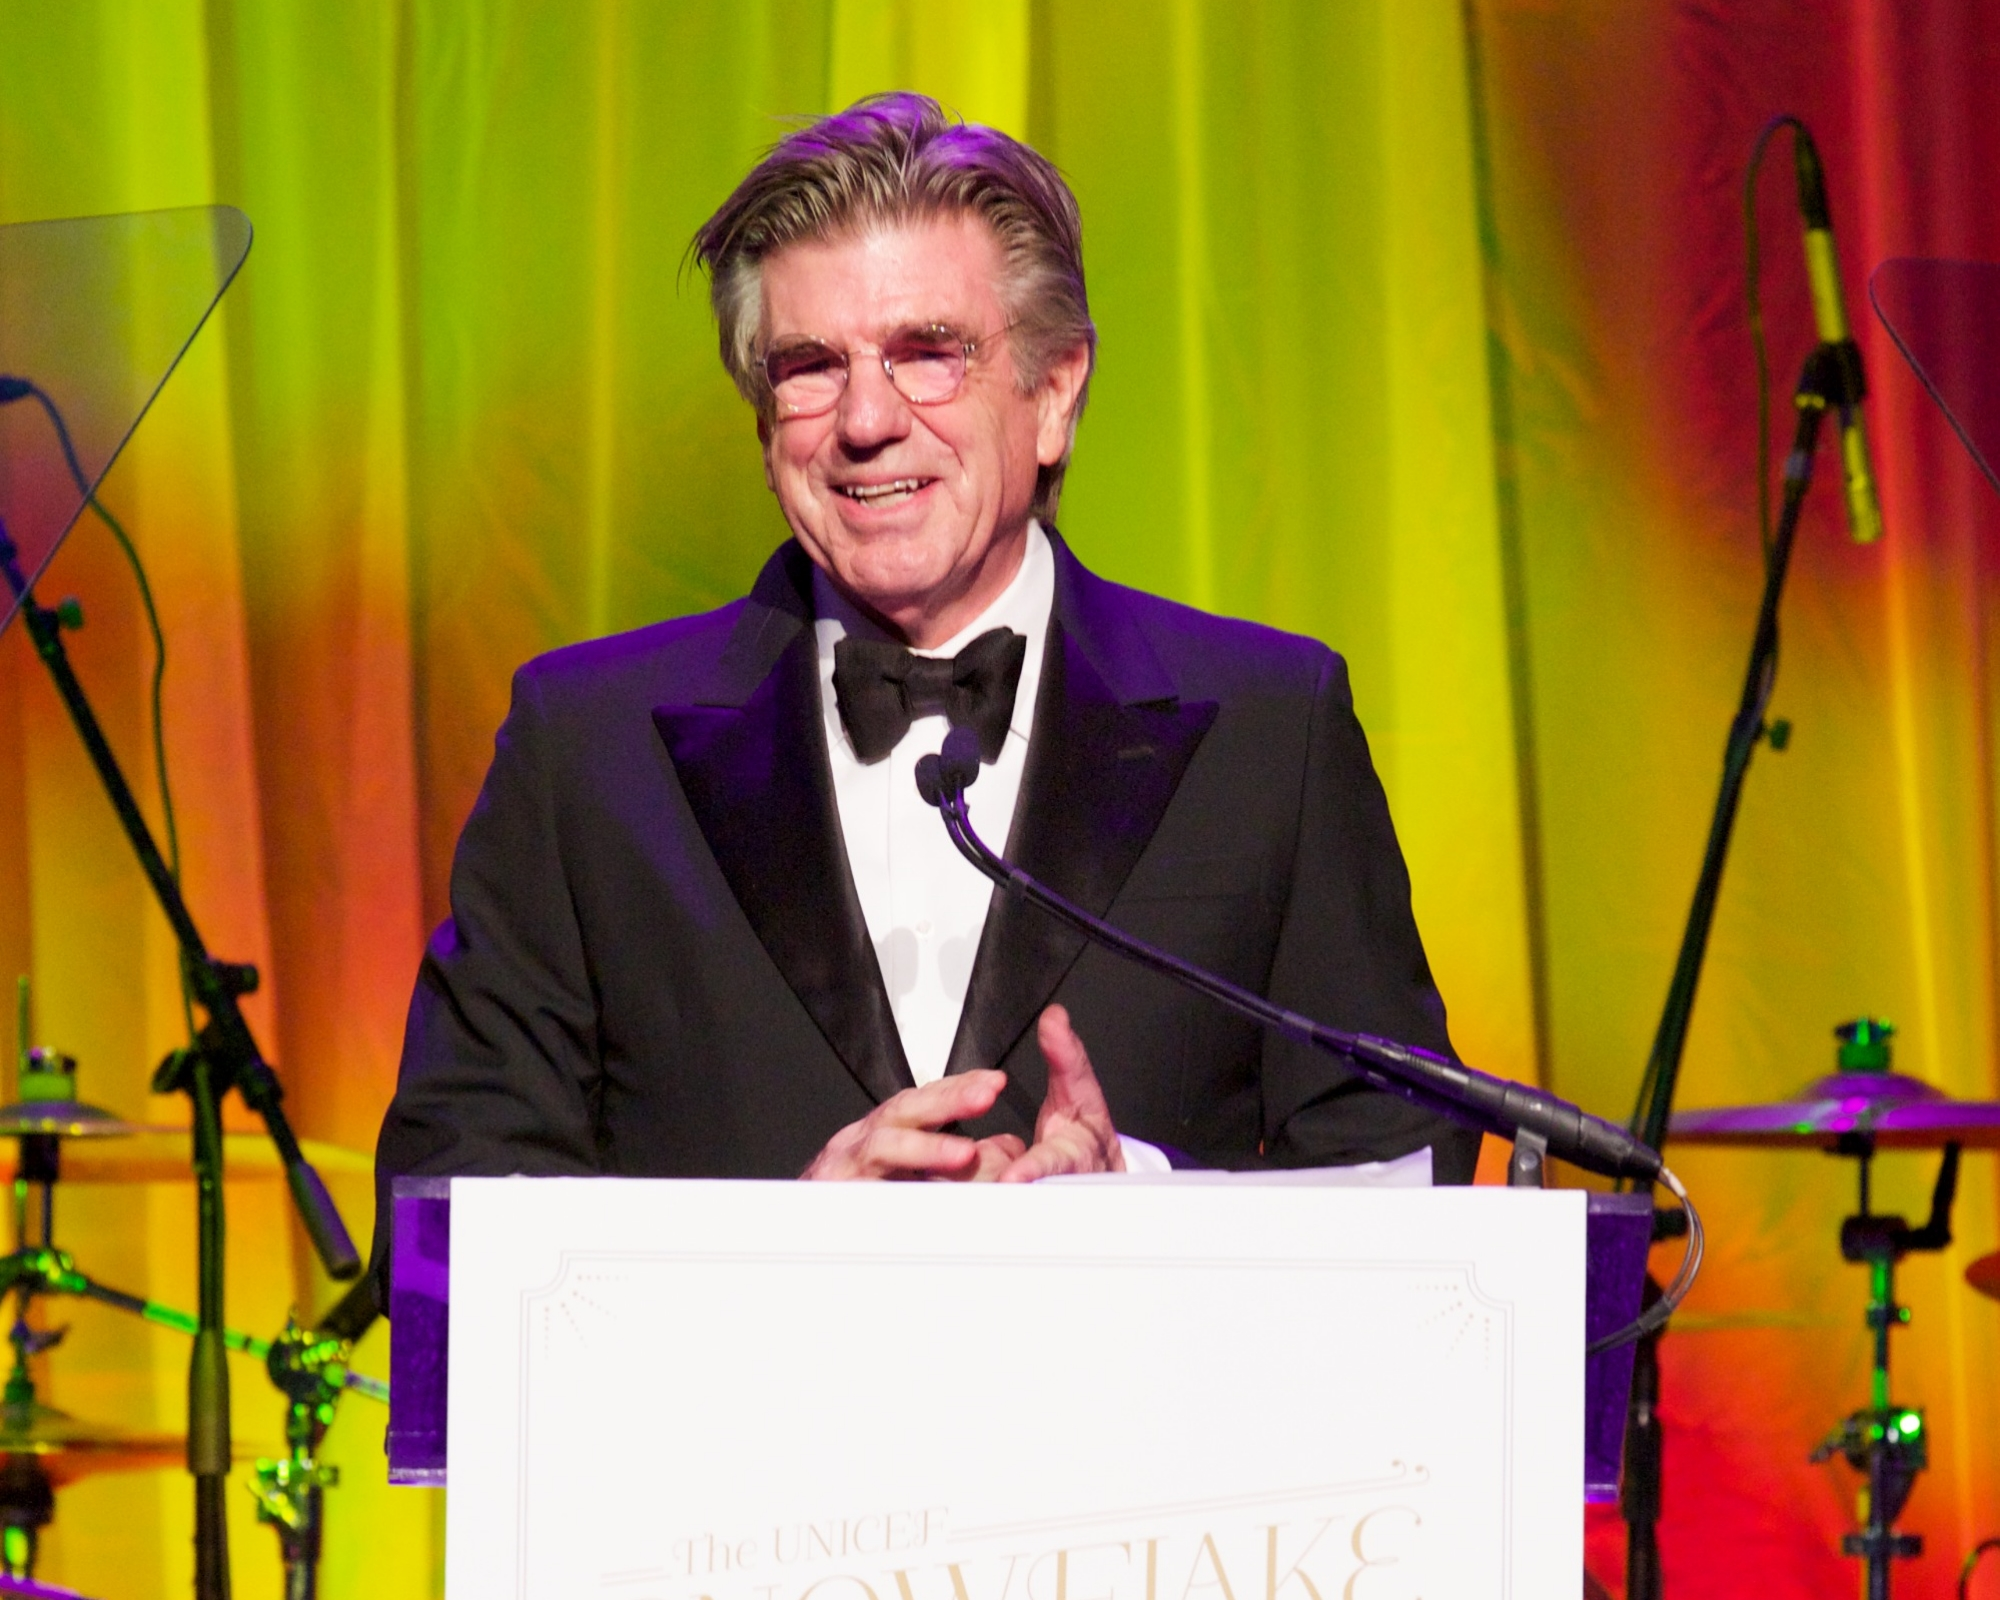 Tom Freston, Recipient of the 2014 Spirit of Compassion Award © 2014 Julie Skarratt Photography Inc./U.S. Fund for UNICEF